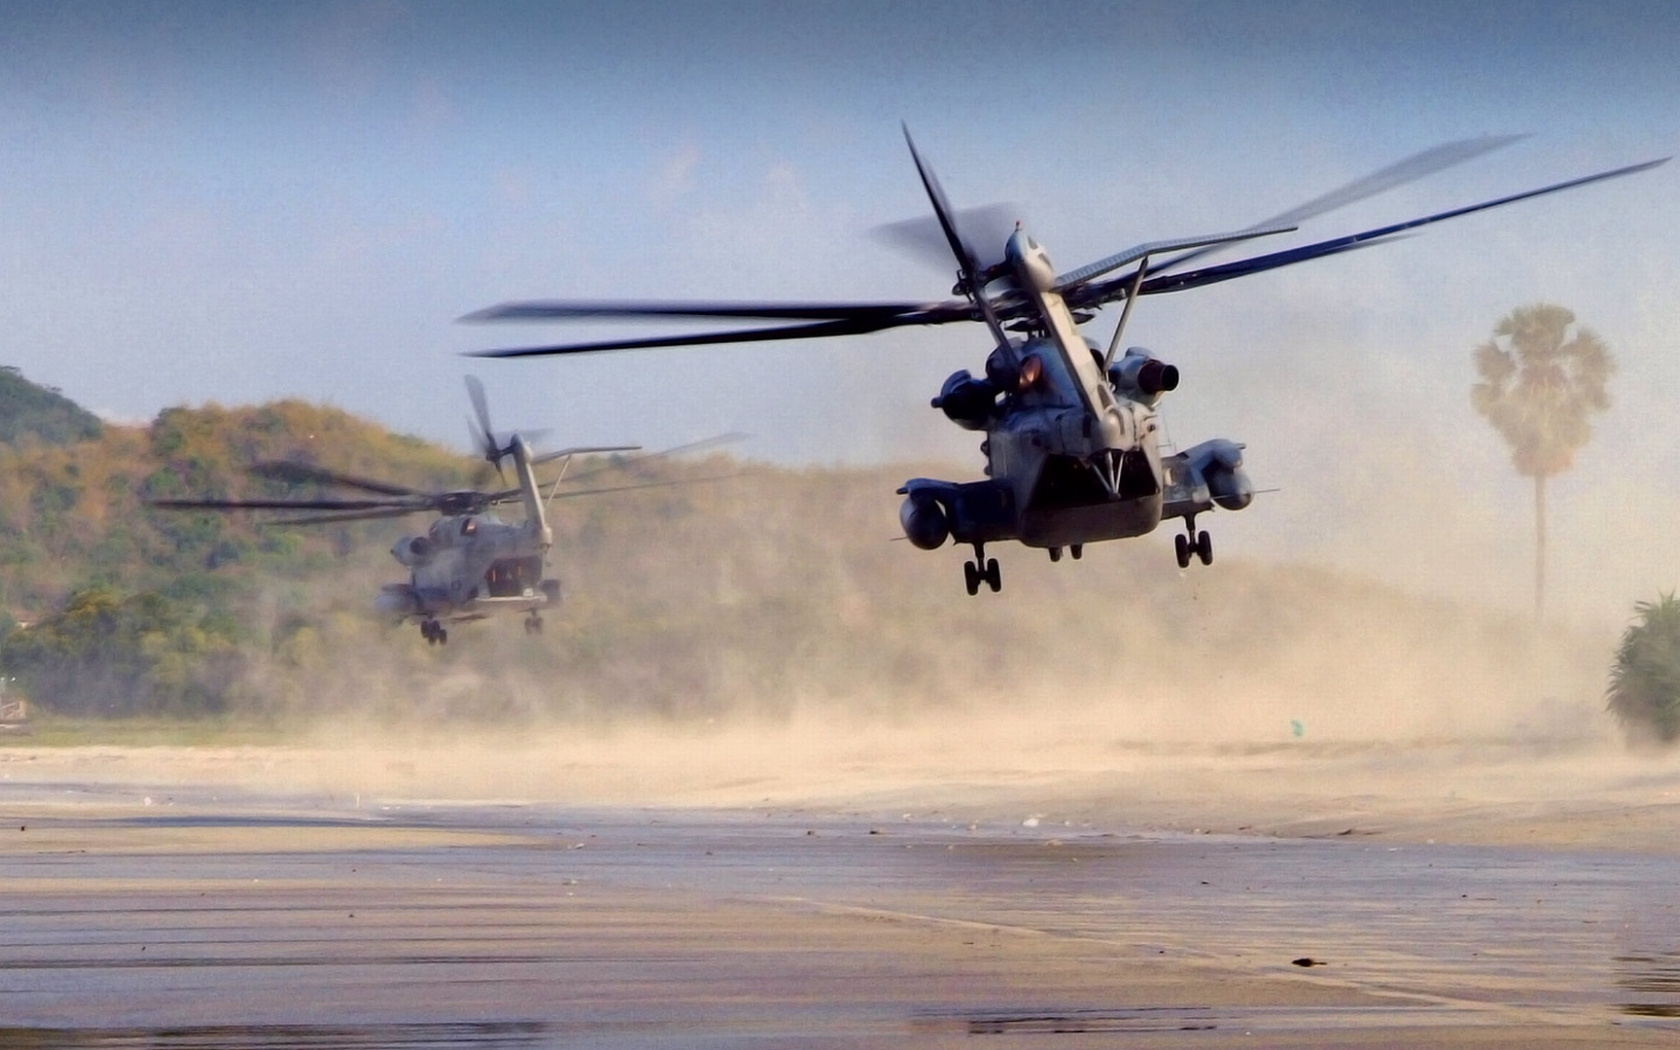 Free Download Military Helicopter Wallpaper 1920x1080 Military Helicopter 1920x1080 For Your Desktop Mobile Tablet Explore 78 Military Helicopters Wallpapers Free Military Aircraft Wallpaper Download Free Aircraft Wallpapers For Desktop